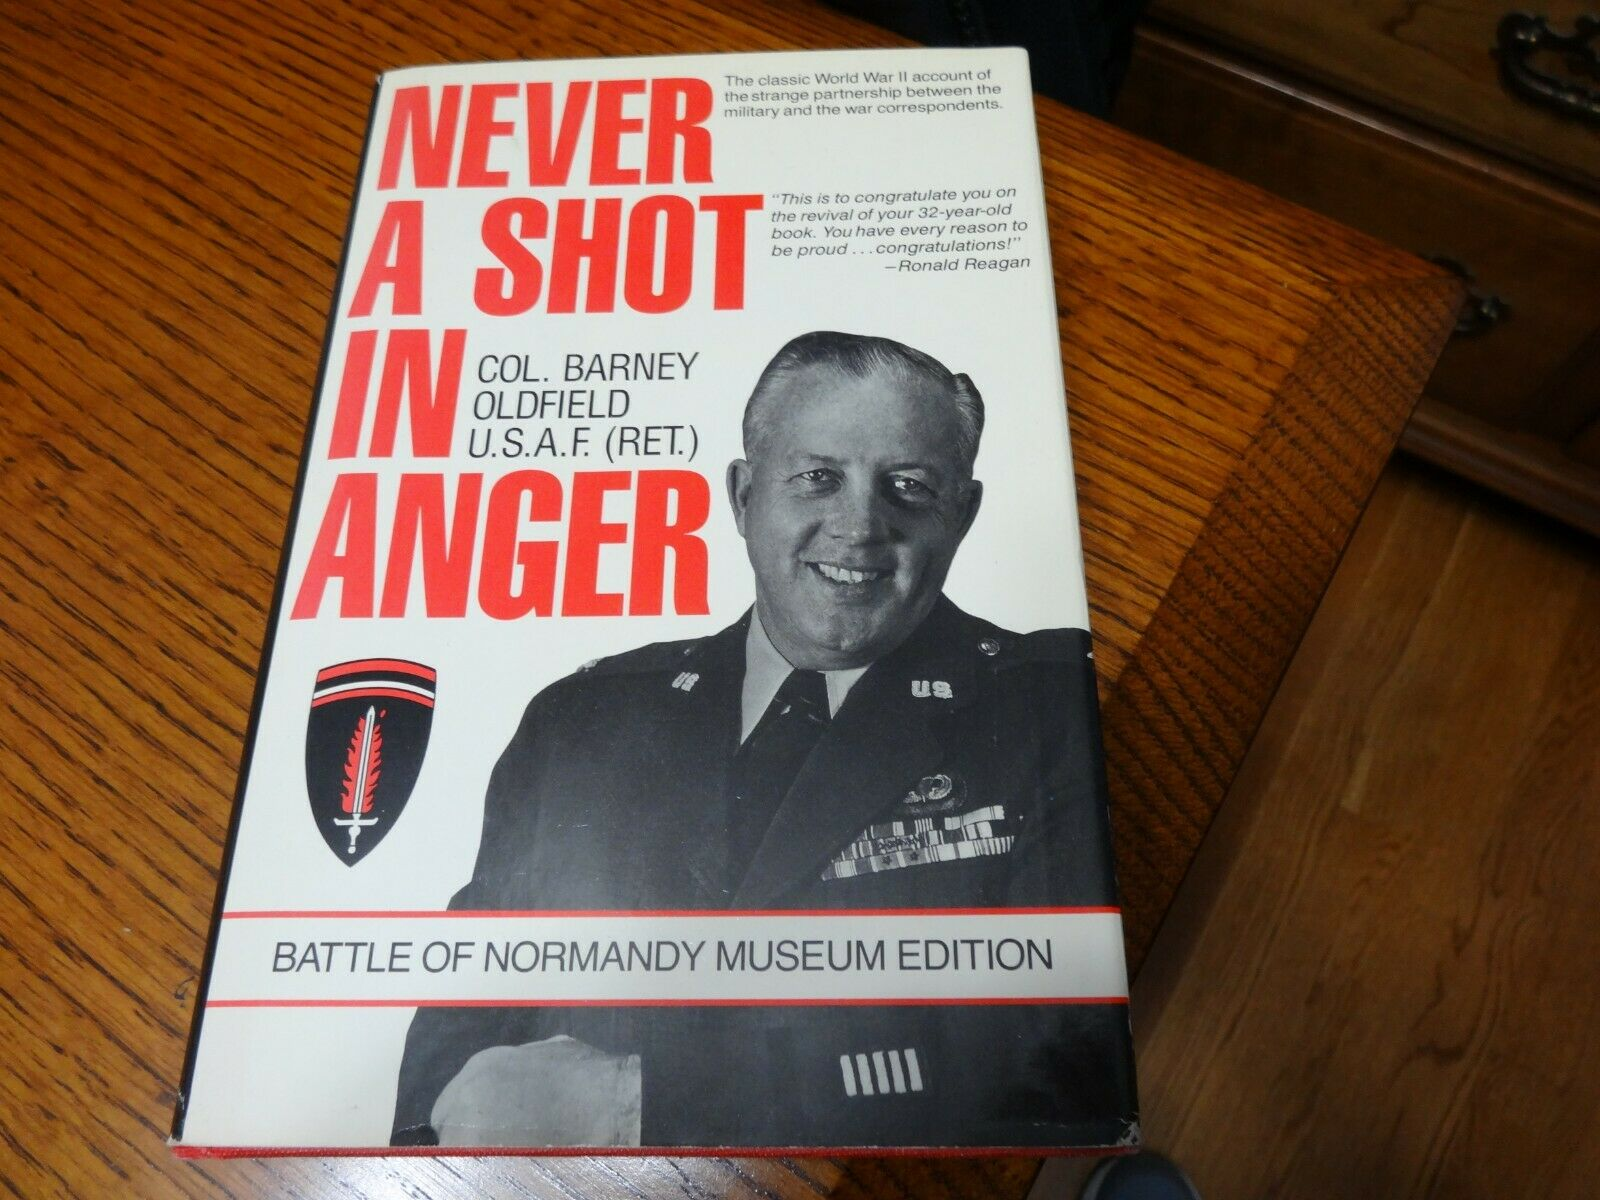 Signed Never A Shot In Anger Barney Oldfield Ww2 - $10.00